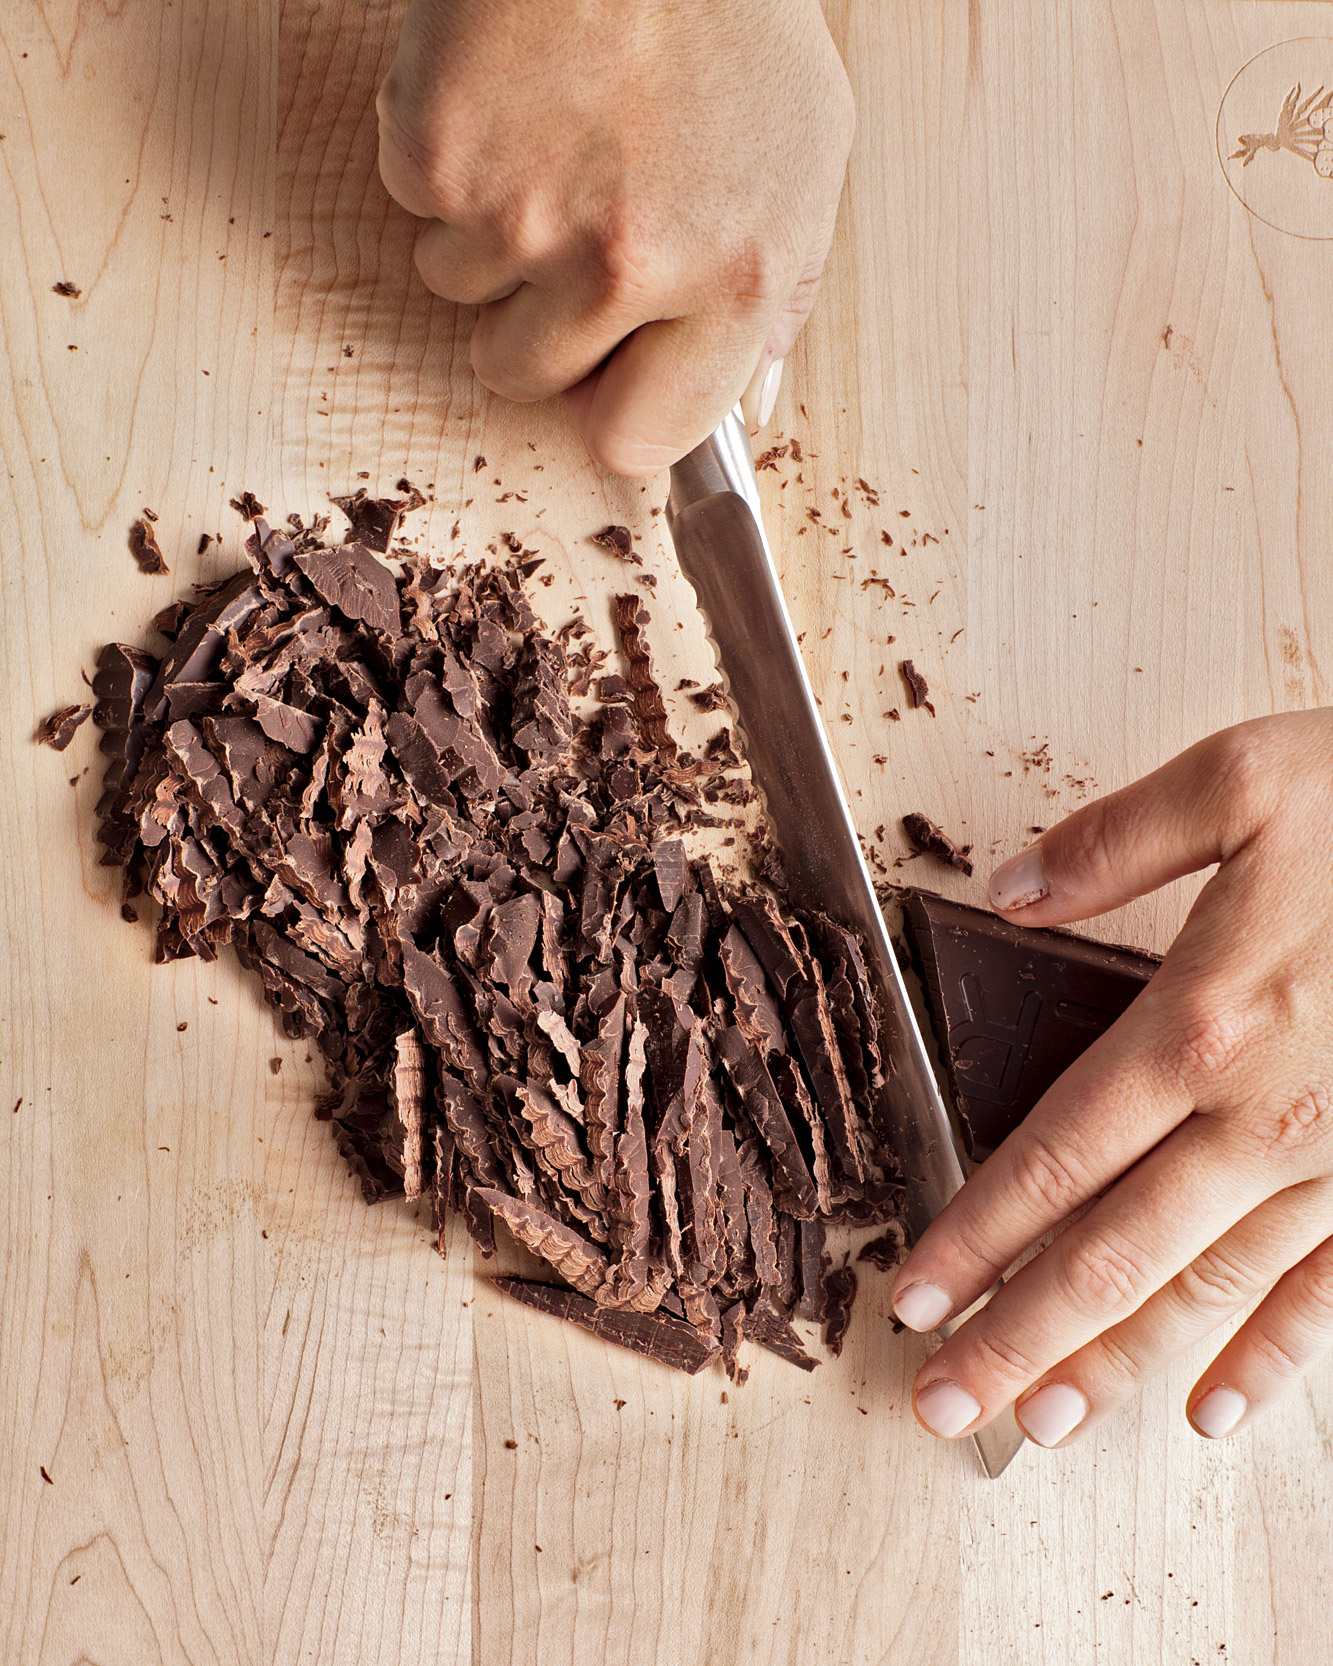 Step 1: Chop the Chocolate